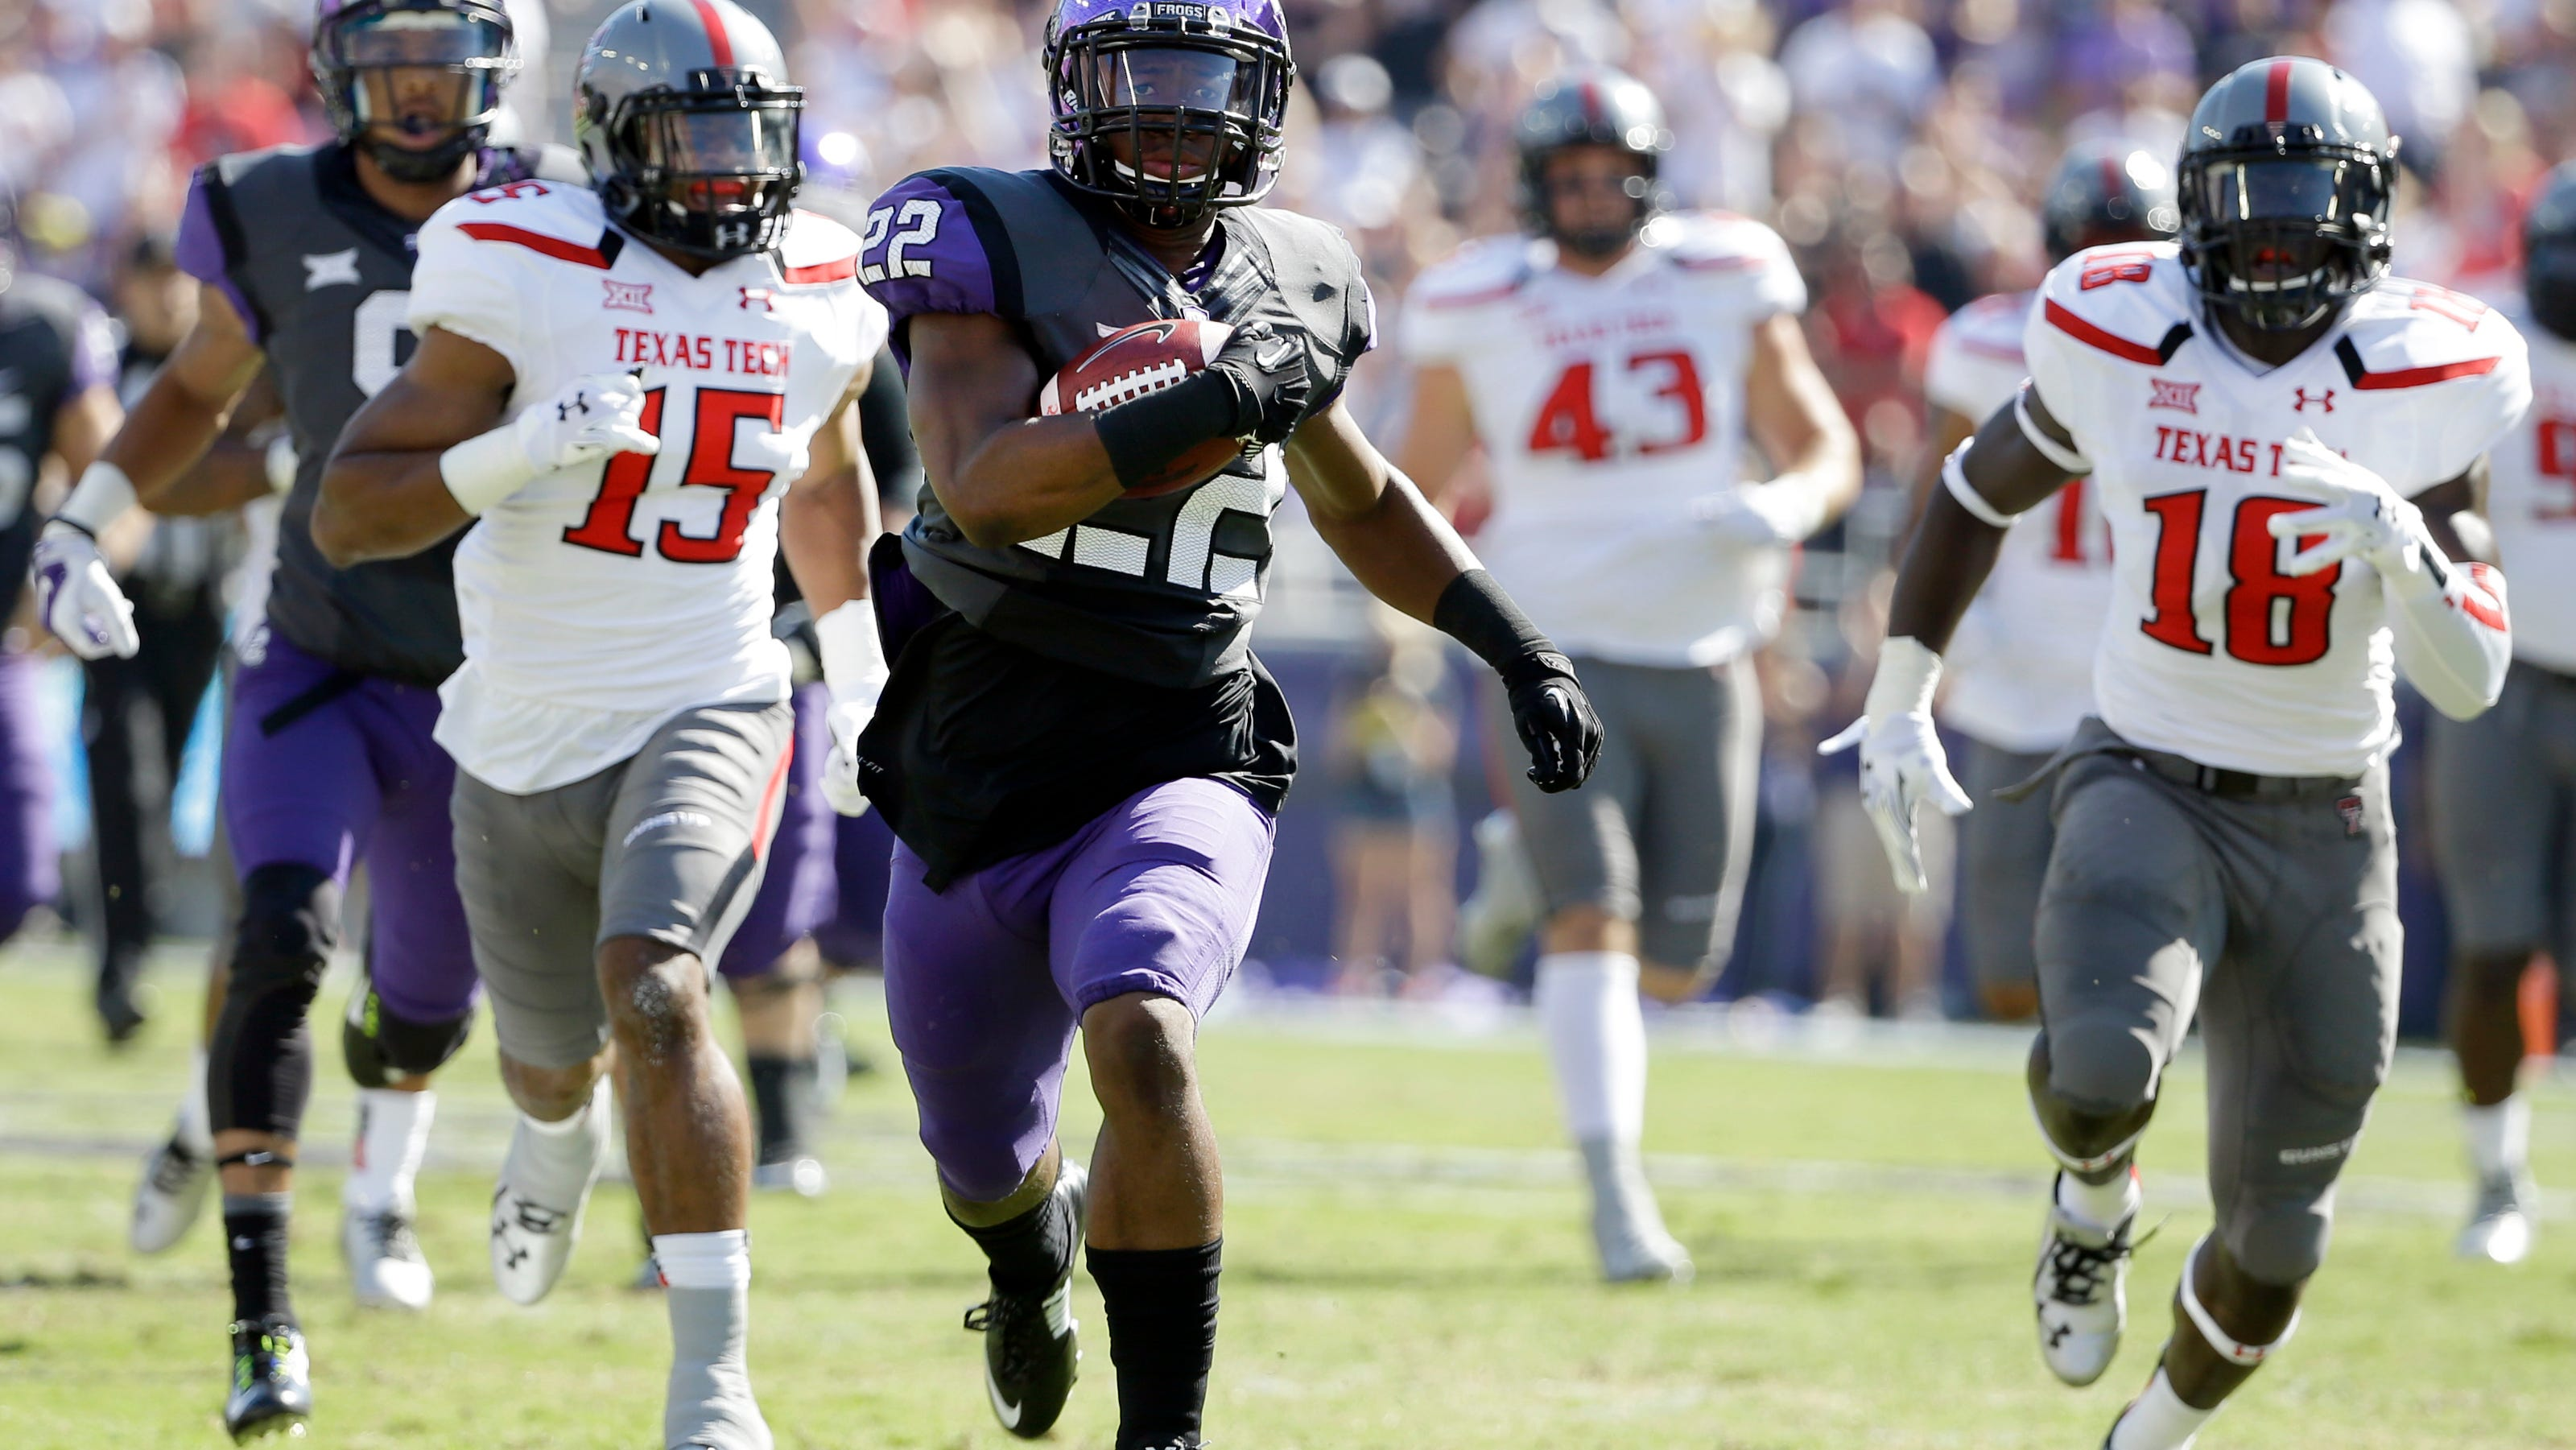 No 10 Tcu Pours It On In Record Setting 82 27 Rout Of Texas Tech